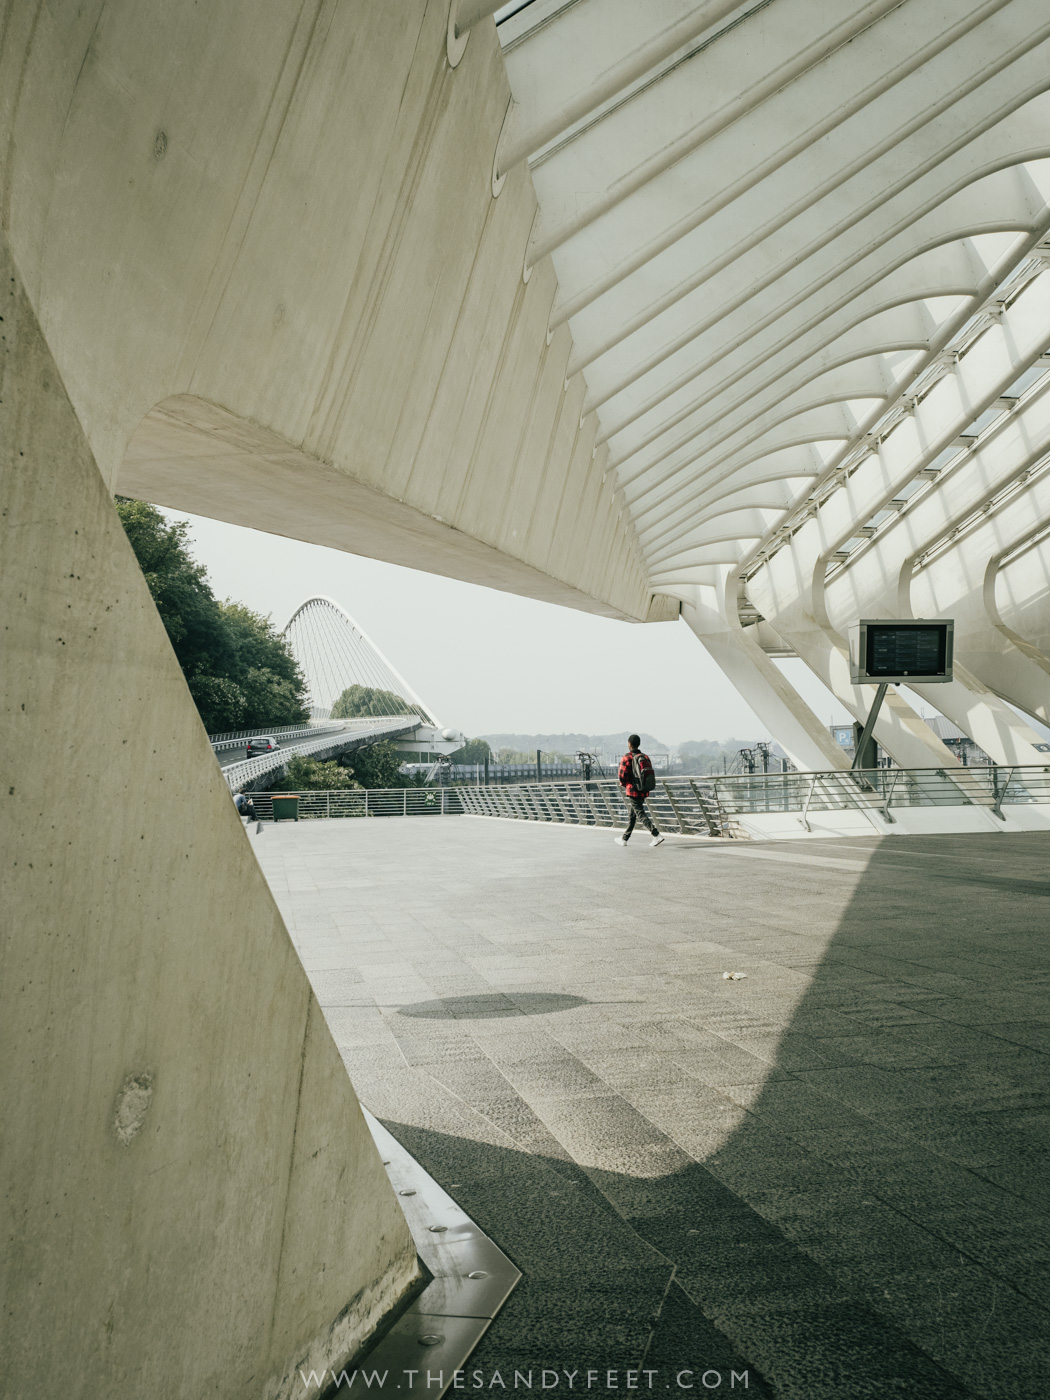 The Spectacular Liege-Guillemins Train Station | Top Things To Do In Liege in Belgium's Wallonia Region.